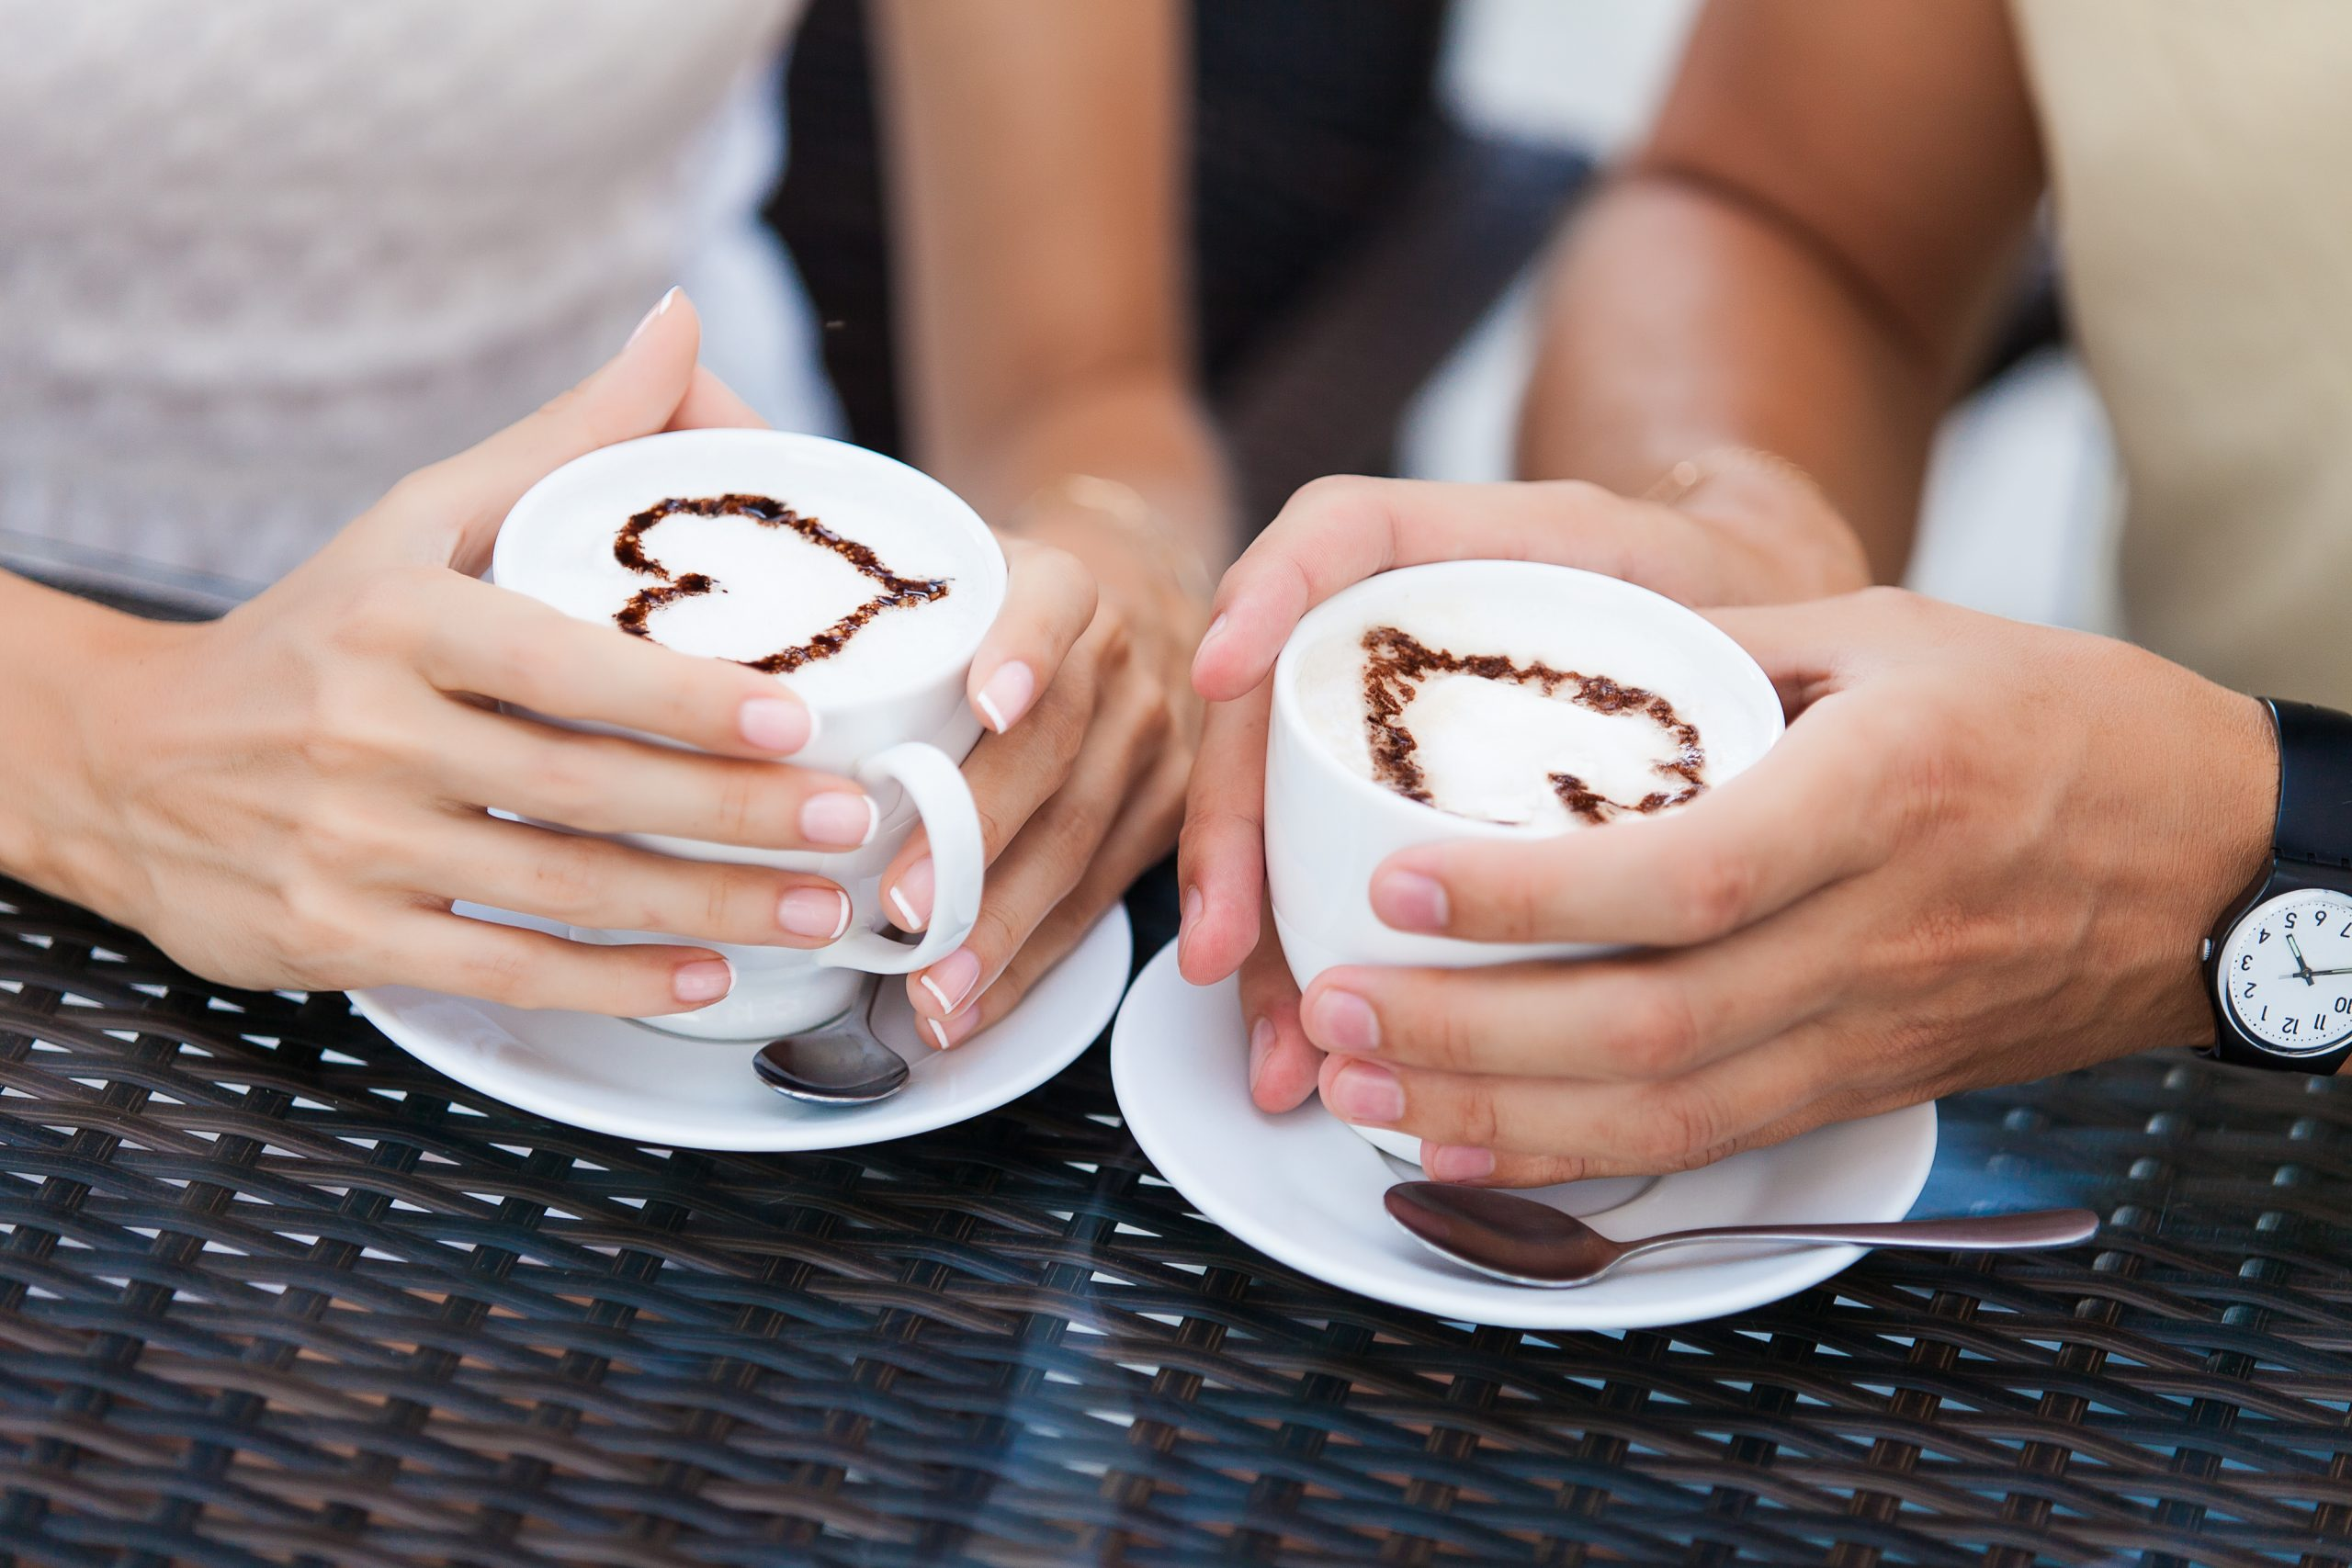 couple holding lattes with hearts on them--some of the best dallas date ideas and romantic things to do in dallas for couples include stopping for coffee